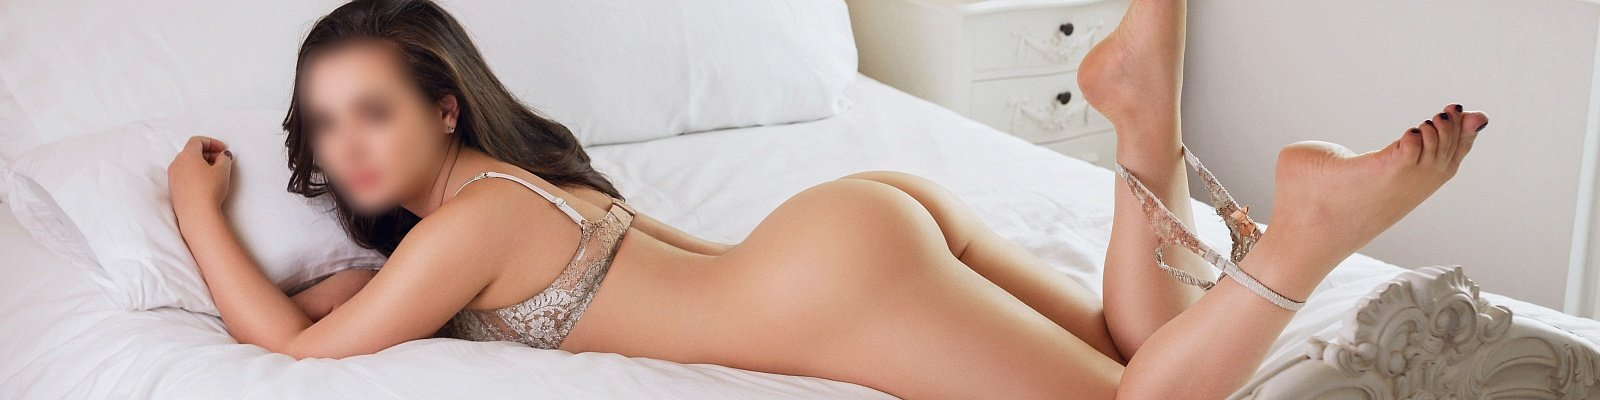 Aussie Alicia Bloom Escort